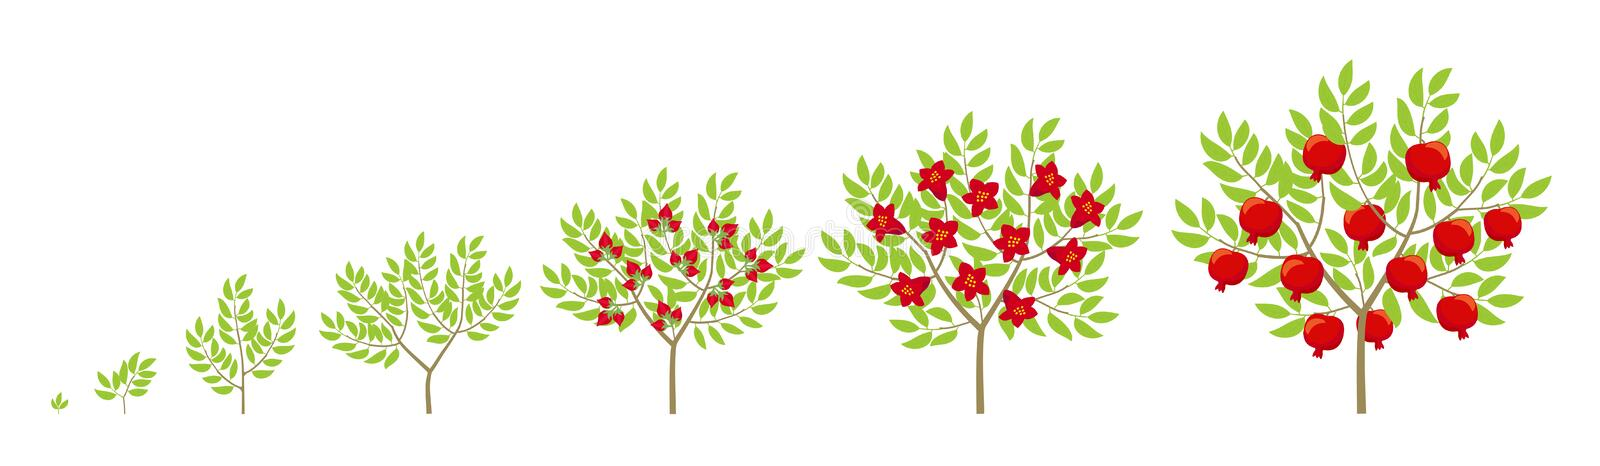 Pomegranate tree growth stages. Ripening period punica granatum progression. Granate bush life cycle animation plant phases. Flat vector color Illustration vector illustration